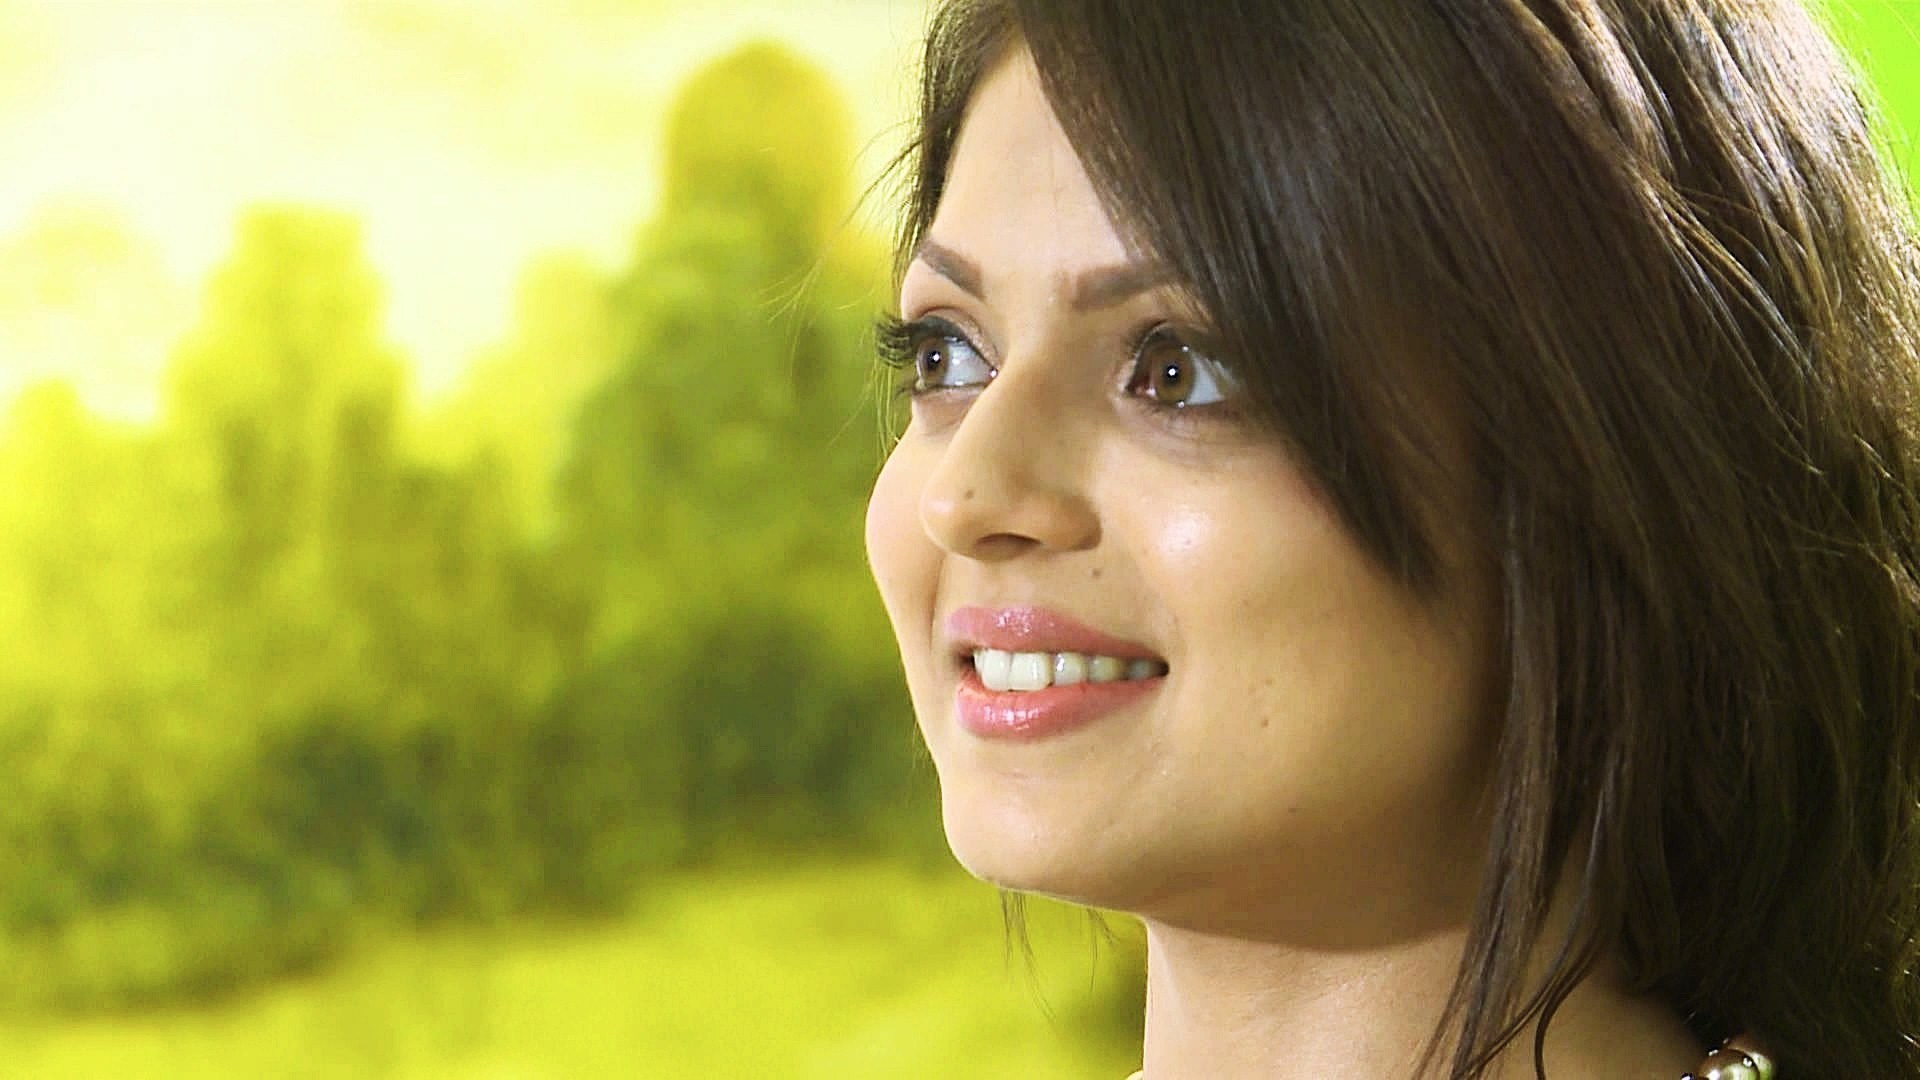 Lovely Drashti Dhami Free Mobile Background Pictures Hd Download